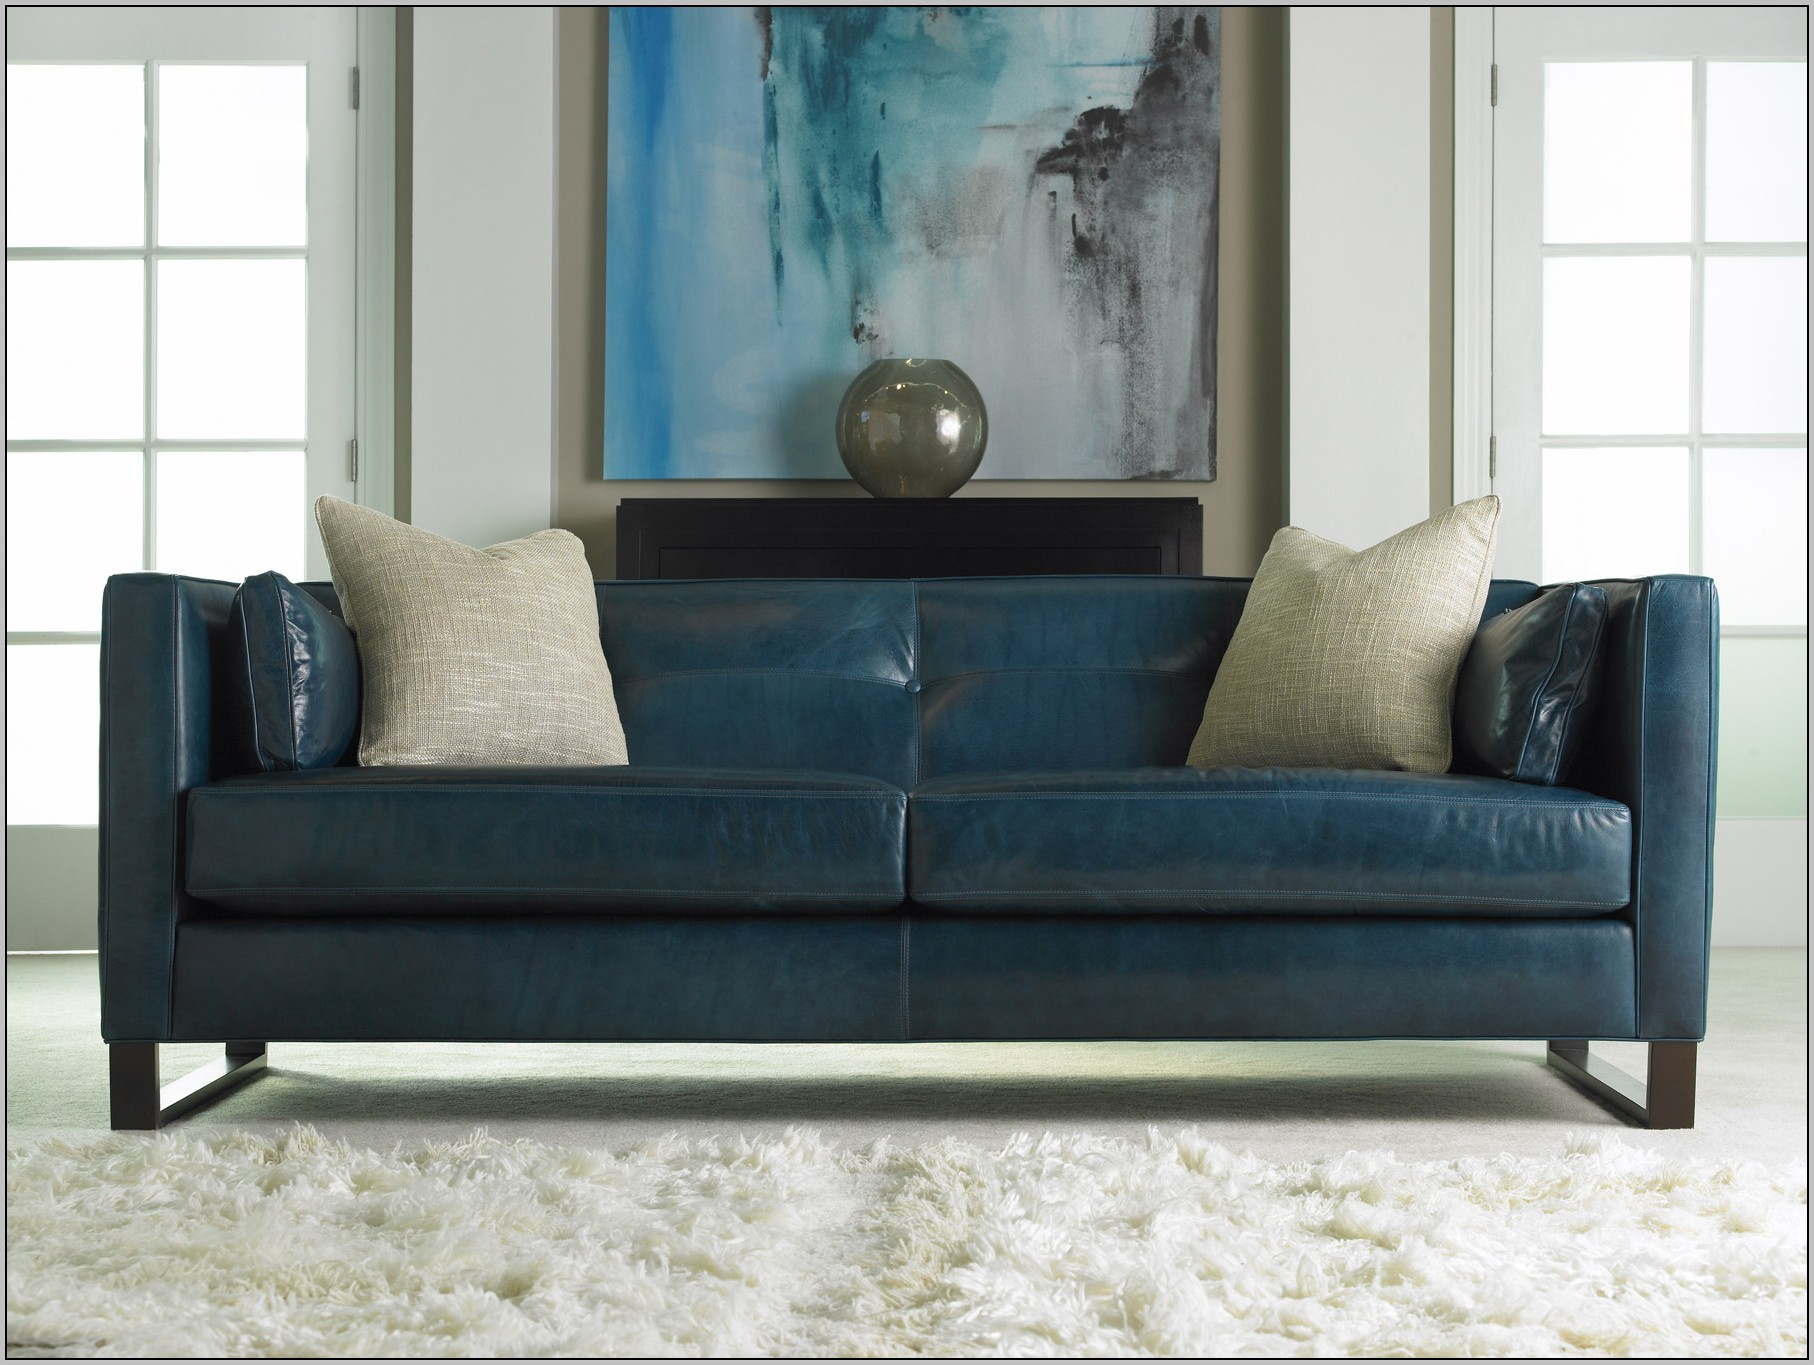 Awesome Blue Leather Sofa 81 In Living Room Sofa Inspiration with Blue Leather Sofa